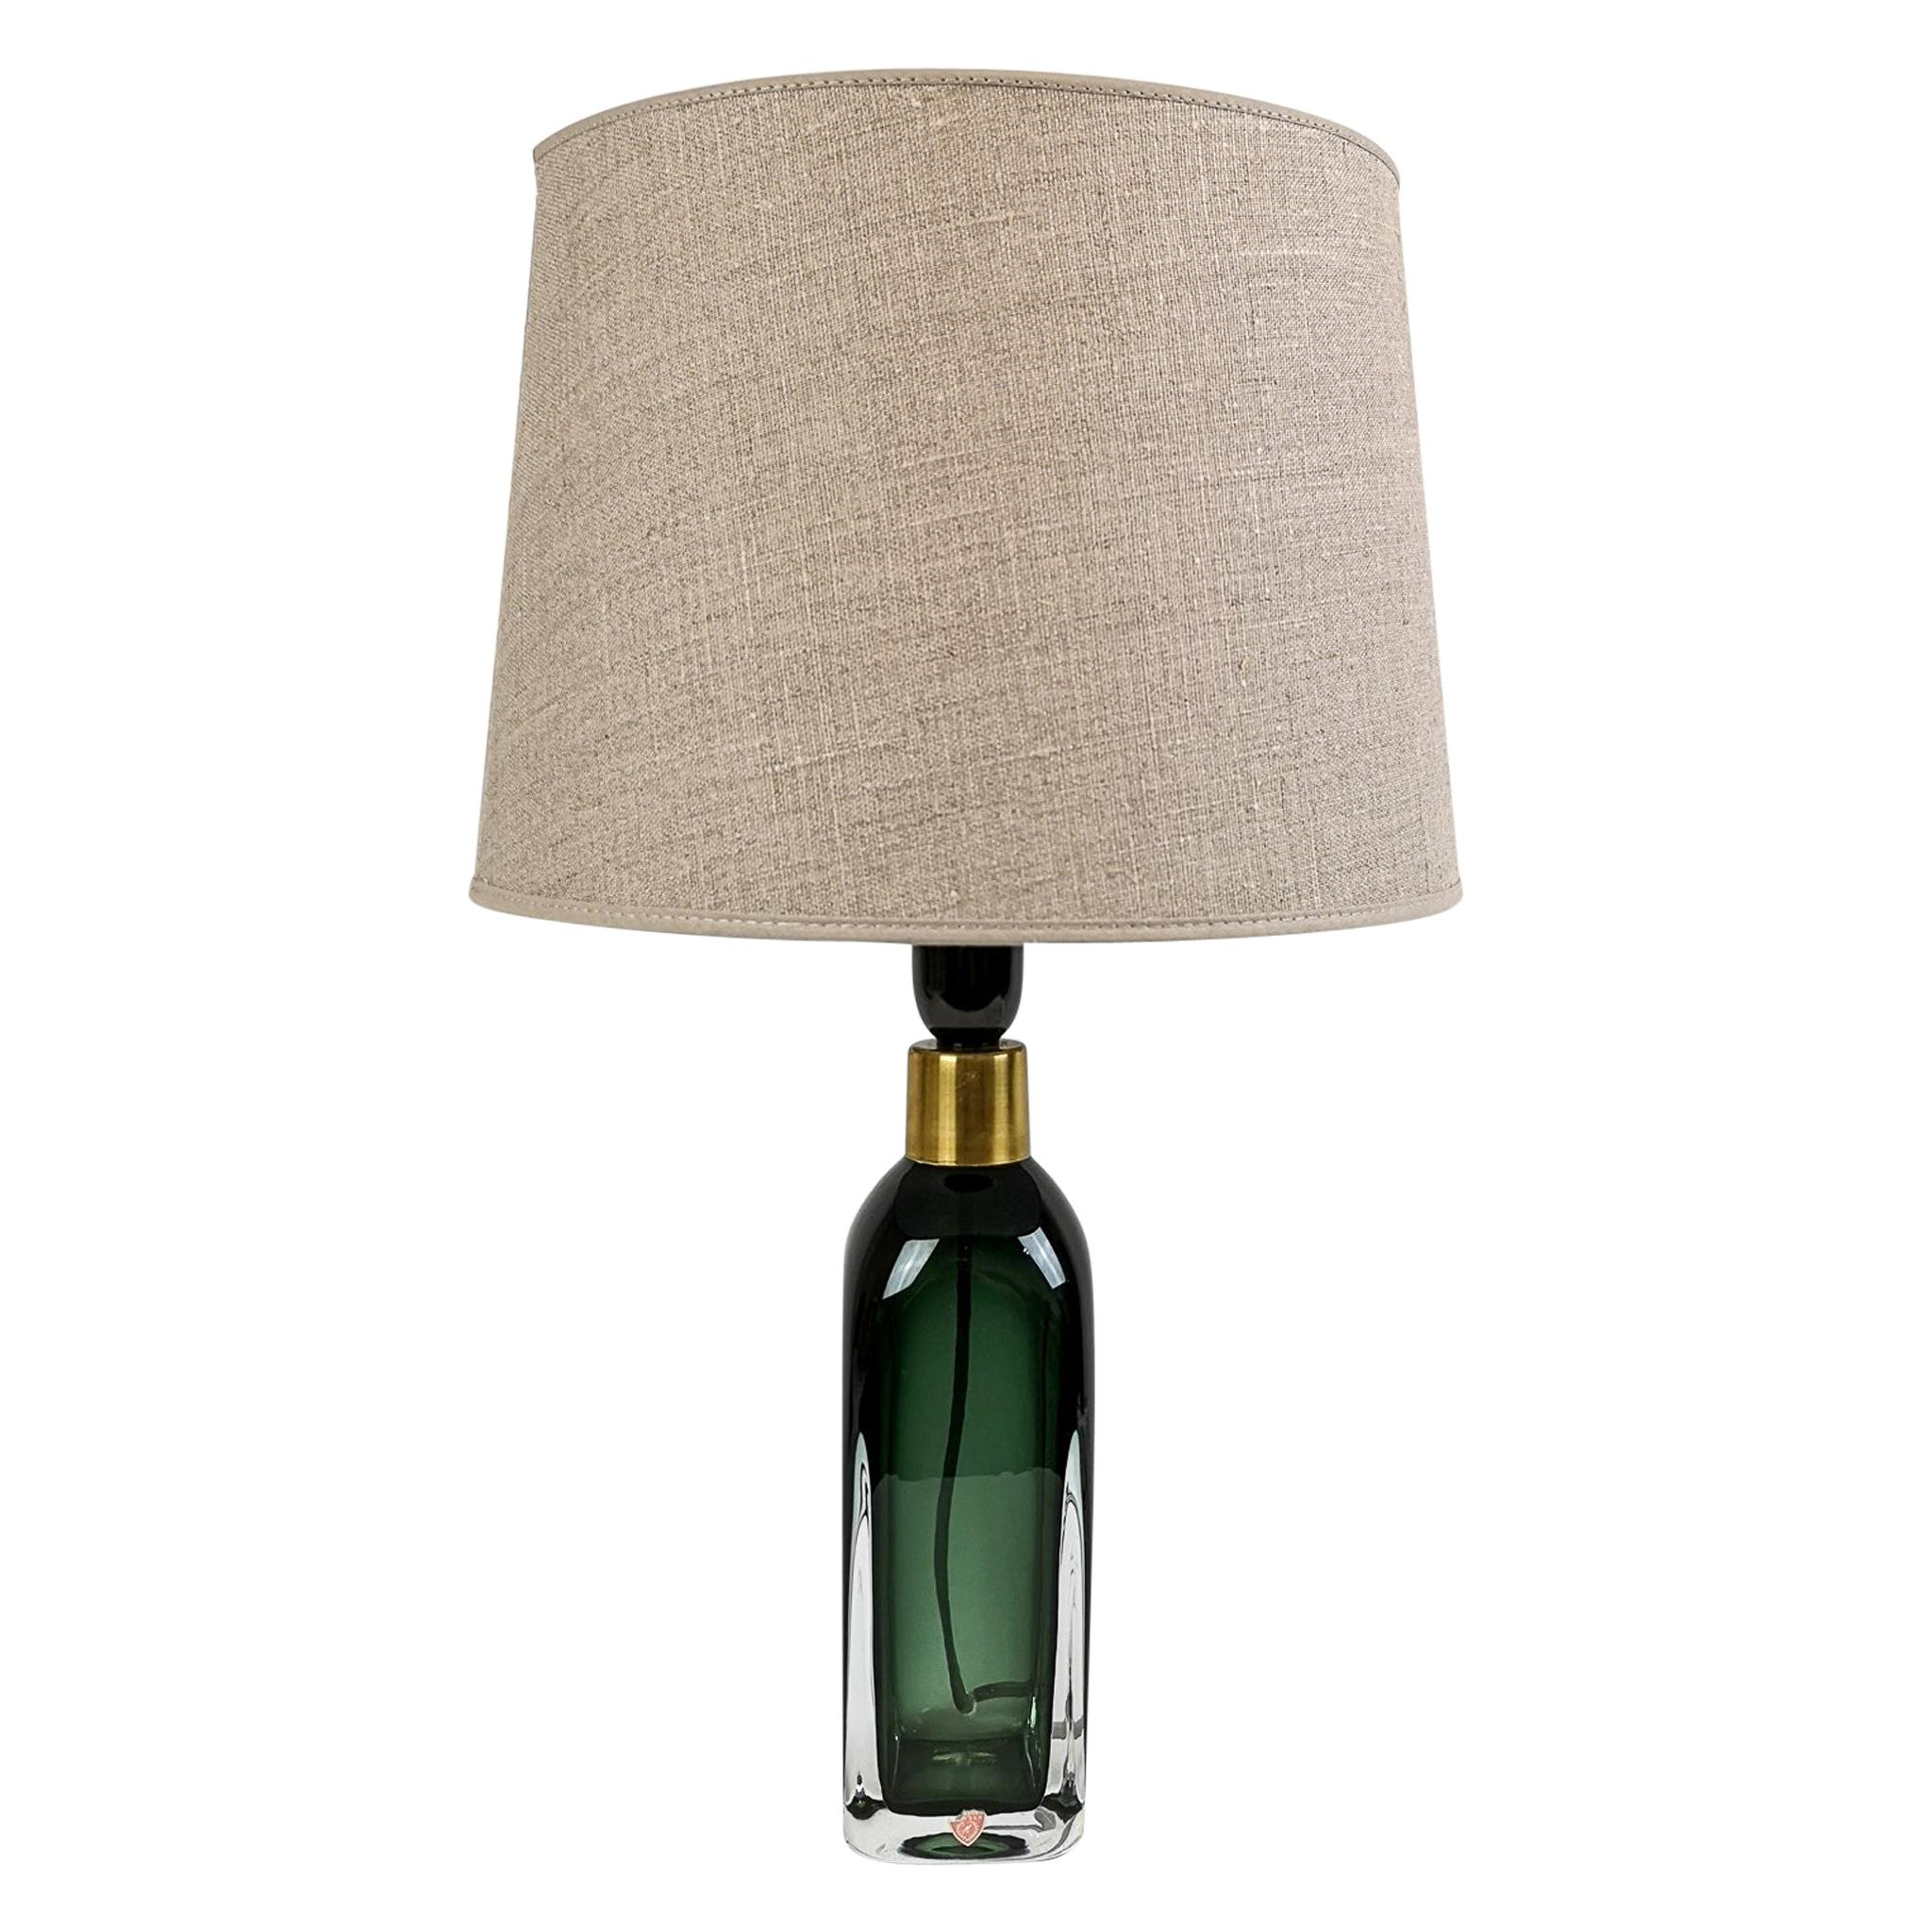 Midcentury Table Lamp by Carl Fagerlund for Orrefors Sweden RD 1406